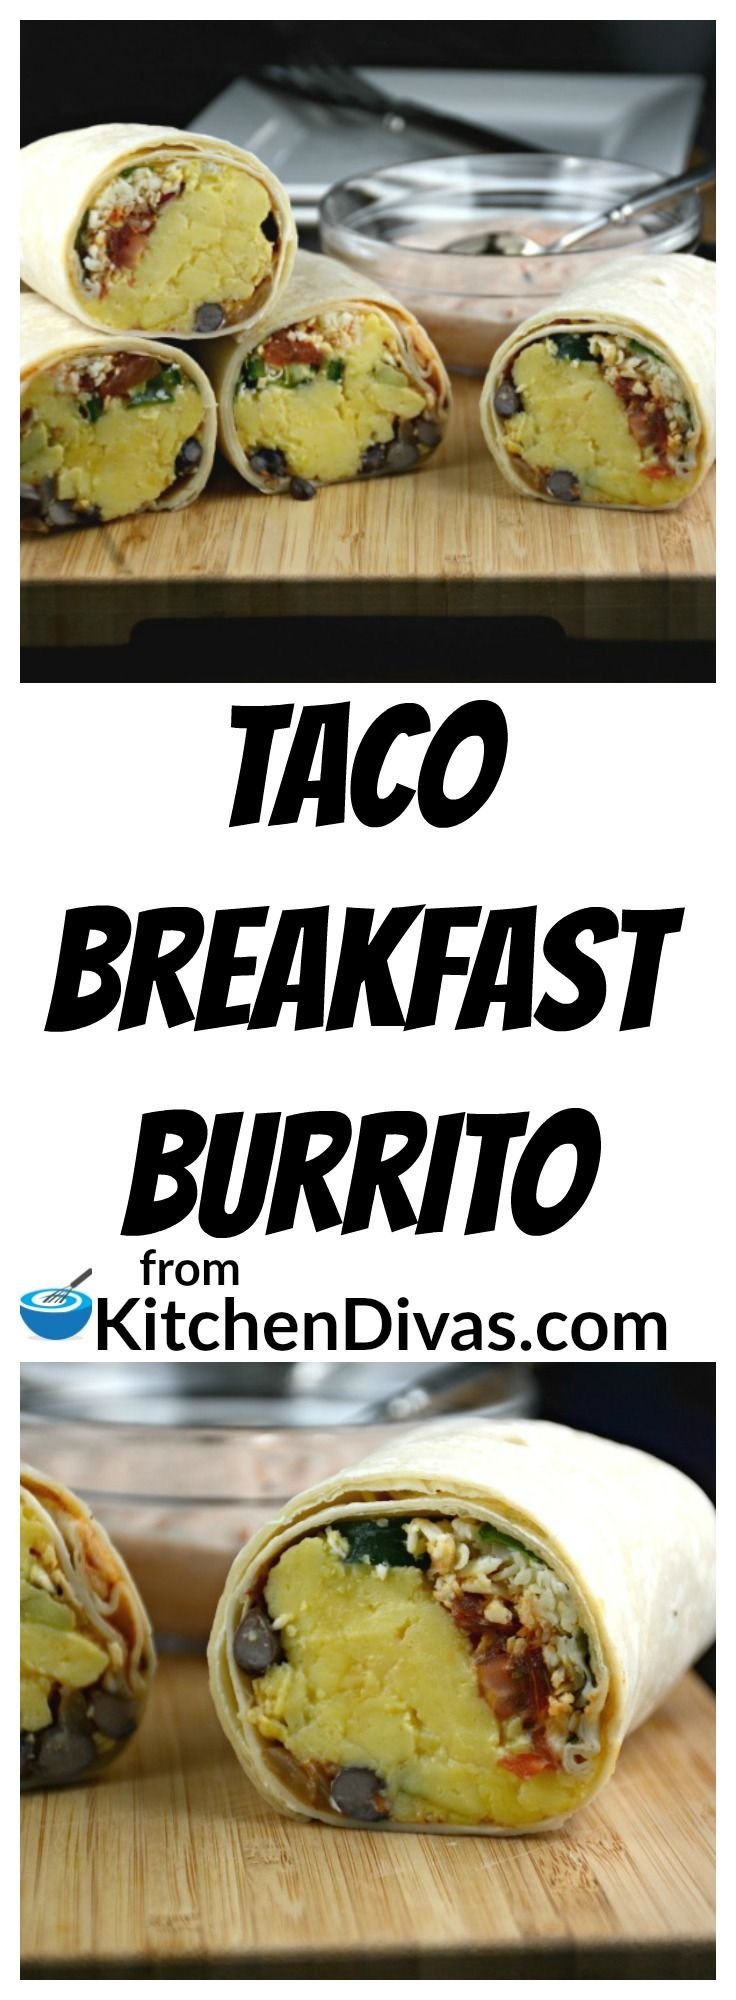 This is a fantastic way to enjoy breakfast or brunch! We usually use Monterey Jack cheese but any cheese will do. As a matter of fact you can adjust, add or remove any of the ingredients to suit  your tastes.  These Taco Breakfast Burritos are delicious every time.